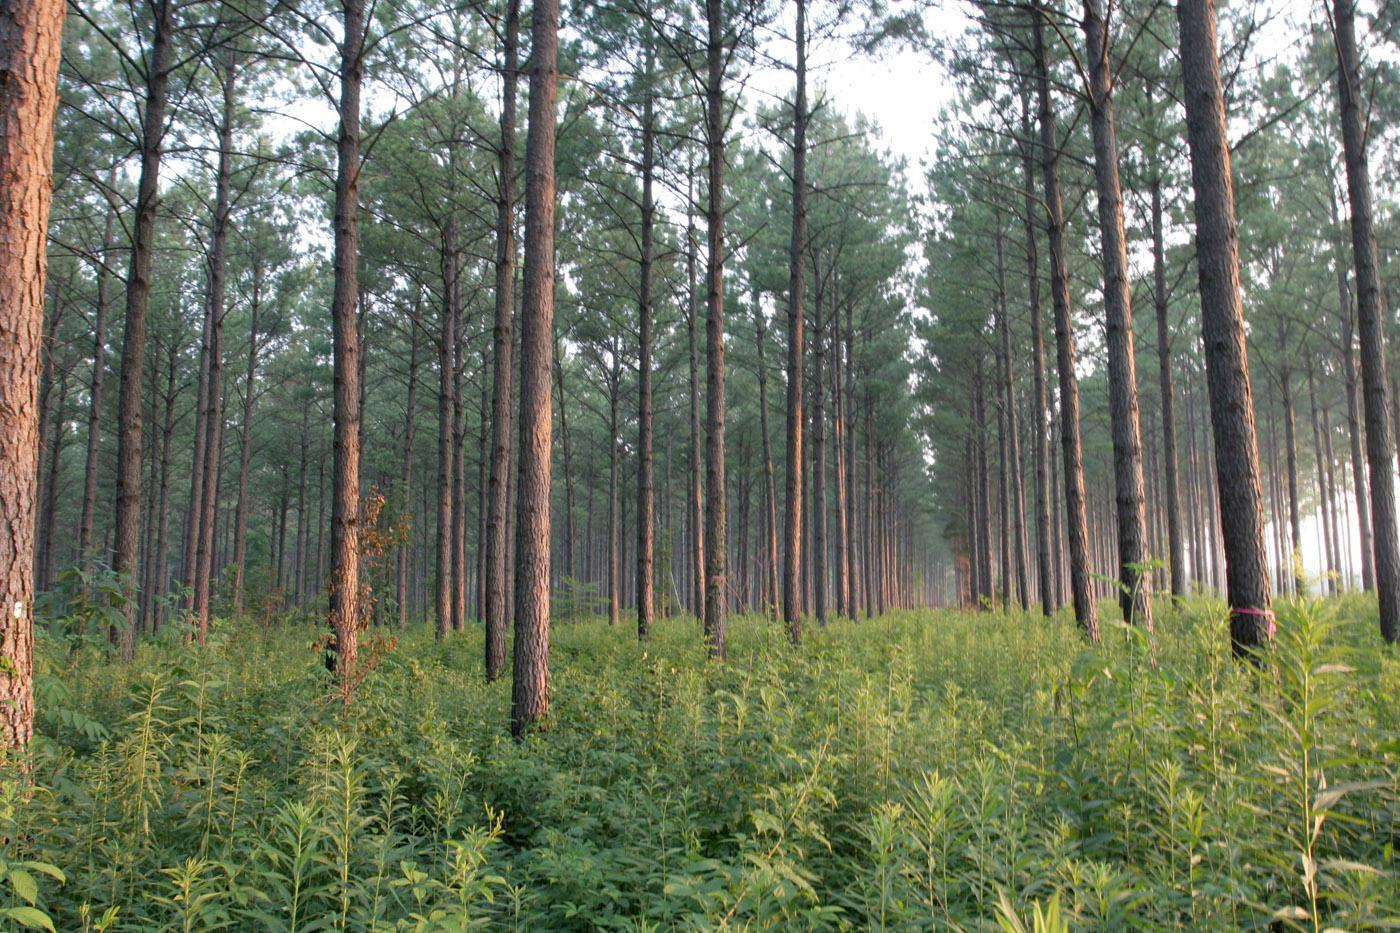 Forestry is Mississippi's second-largest agricultural commodity, with a preliminary year-end harvest value estimated at $1.04 billion. (Photo by Ray Iglay)